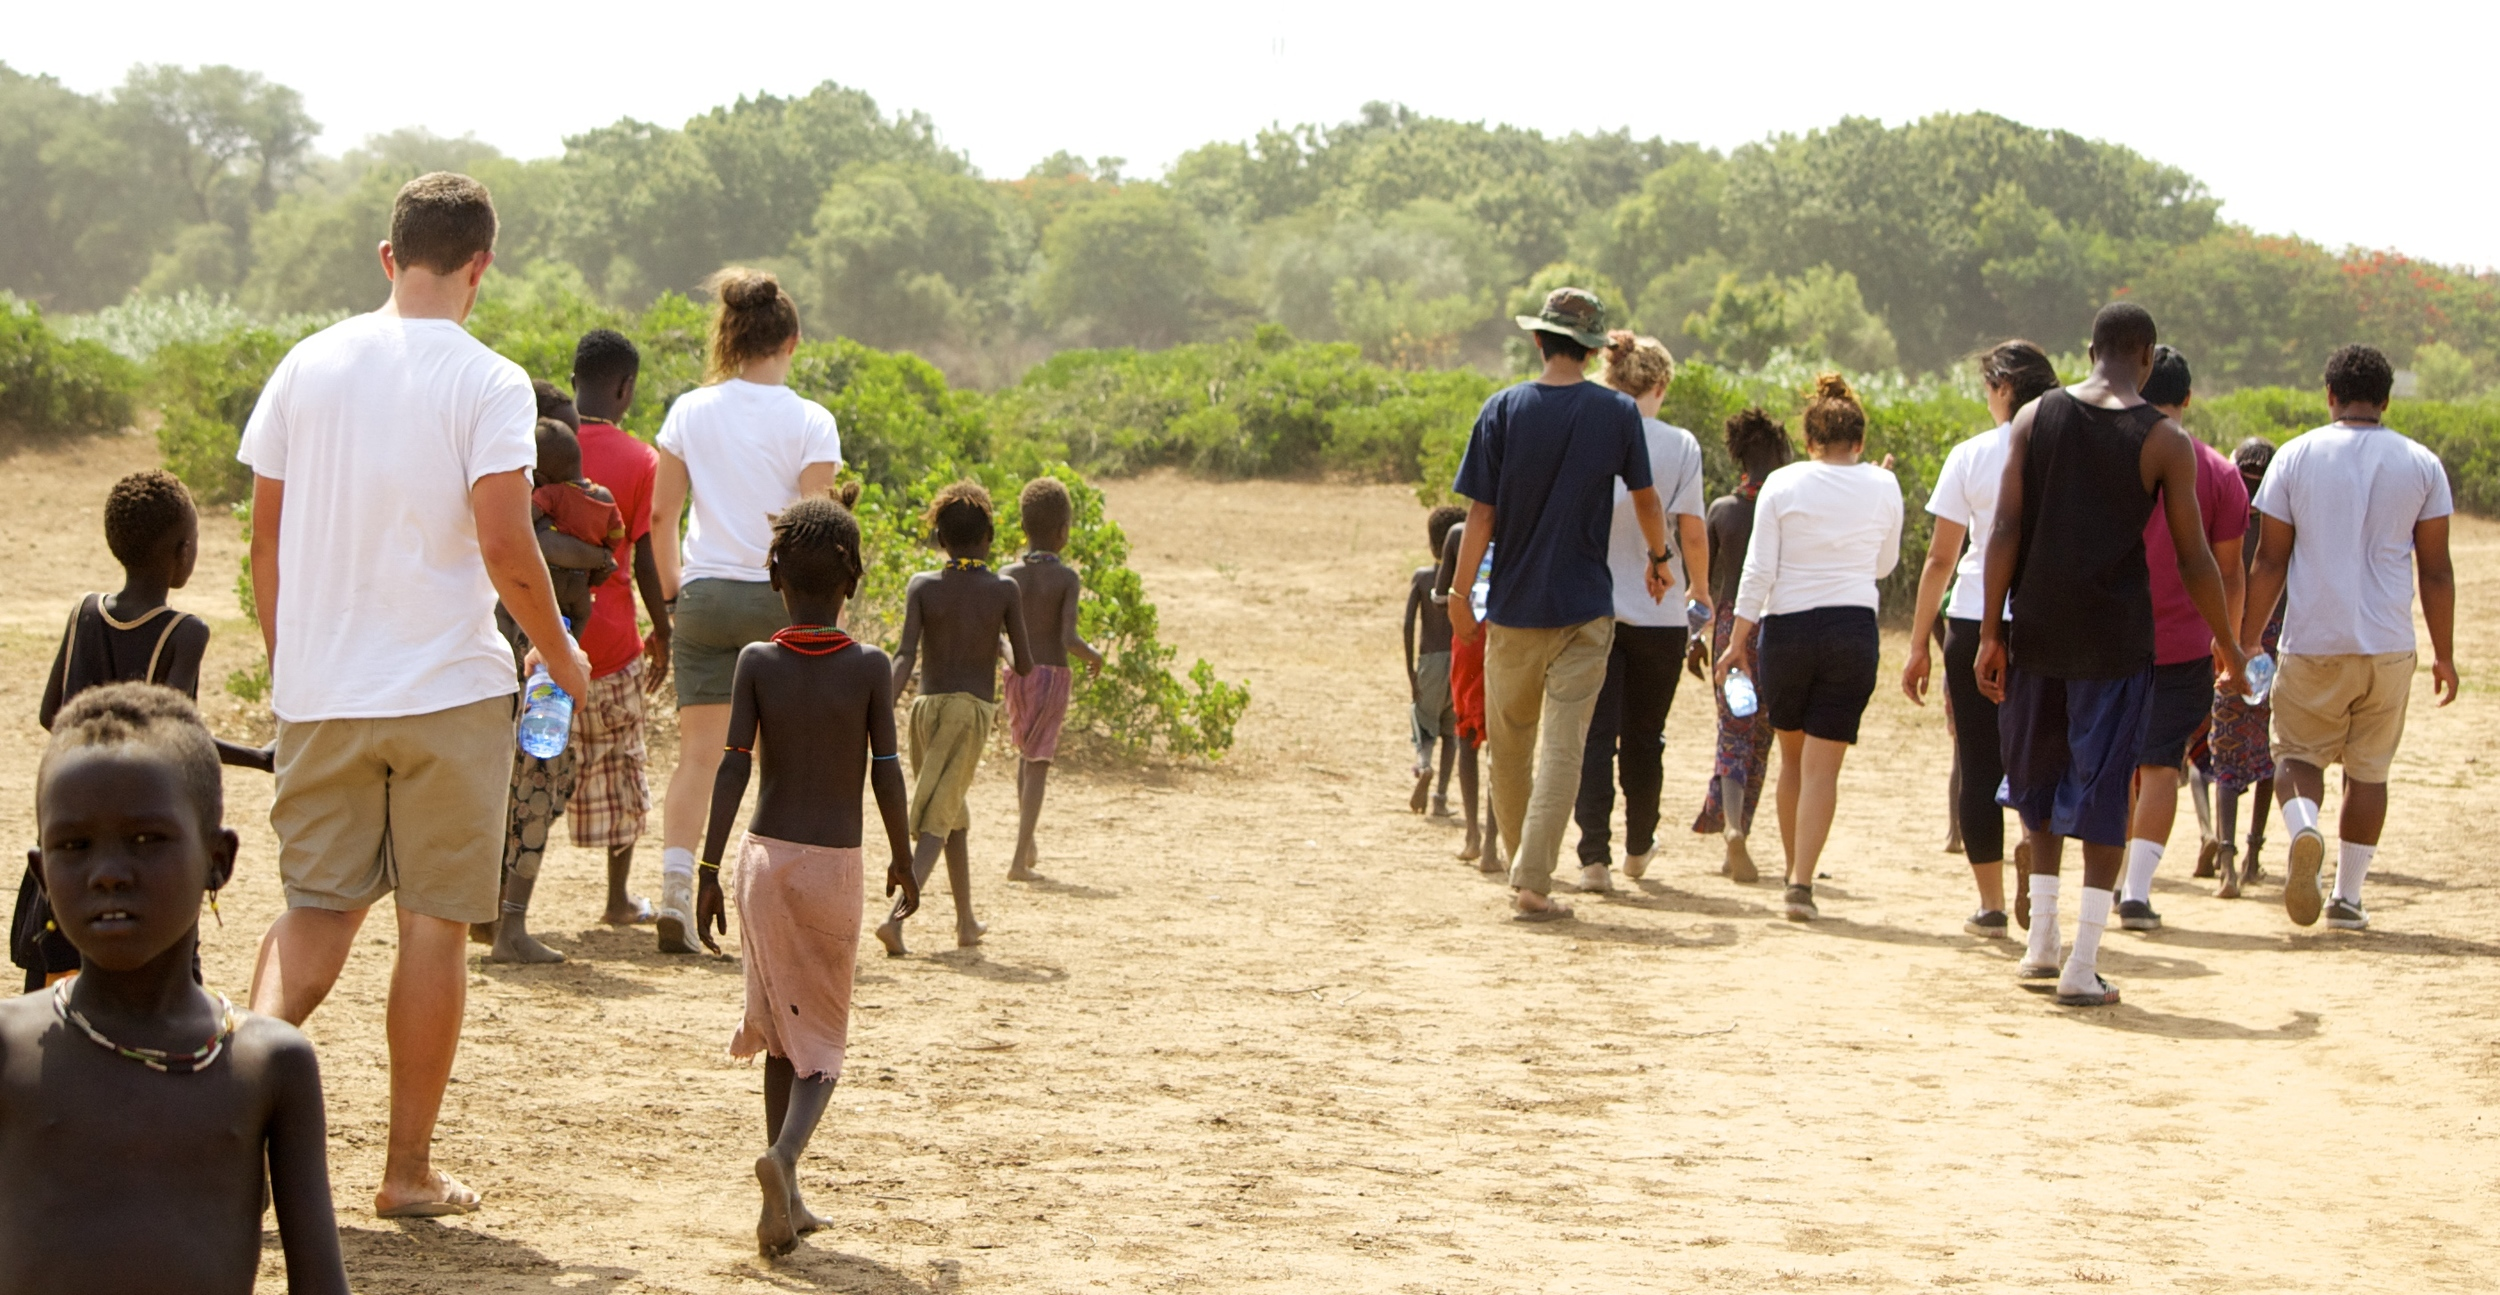 The children from the tribe walking us back to the river